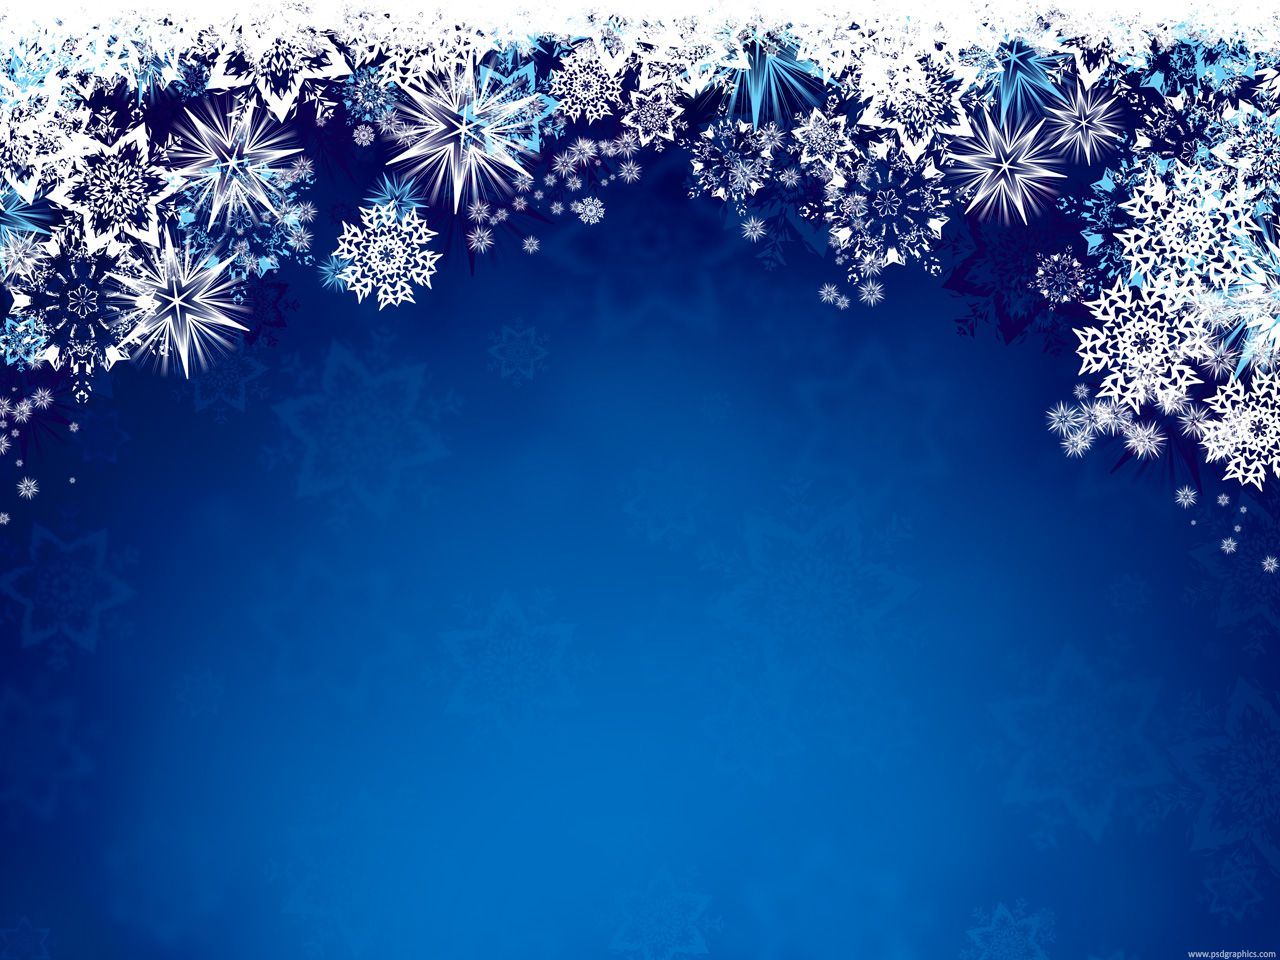 Winter clipart background hd jpg black and white library Winter Clipart | Medium size preview (1280x960px): Blue ... jpg black and white library